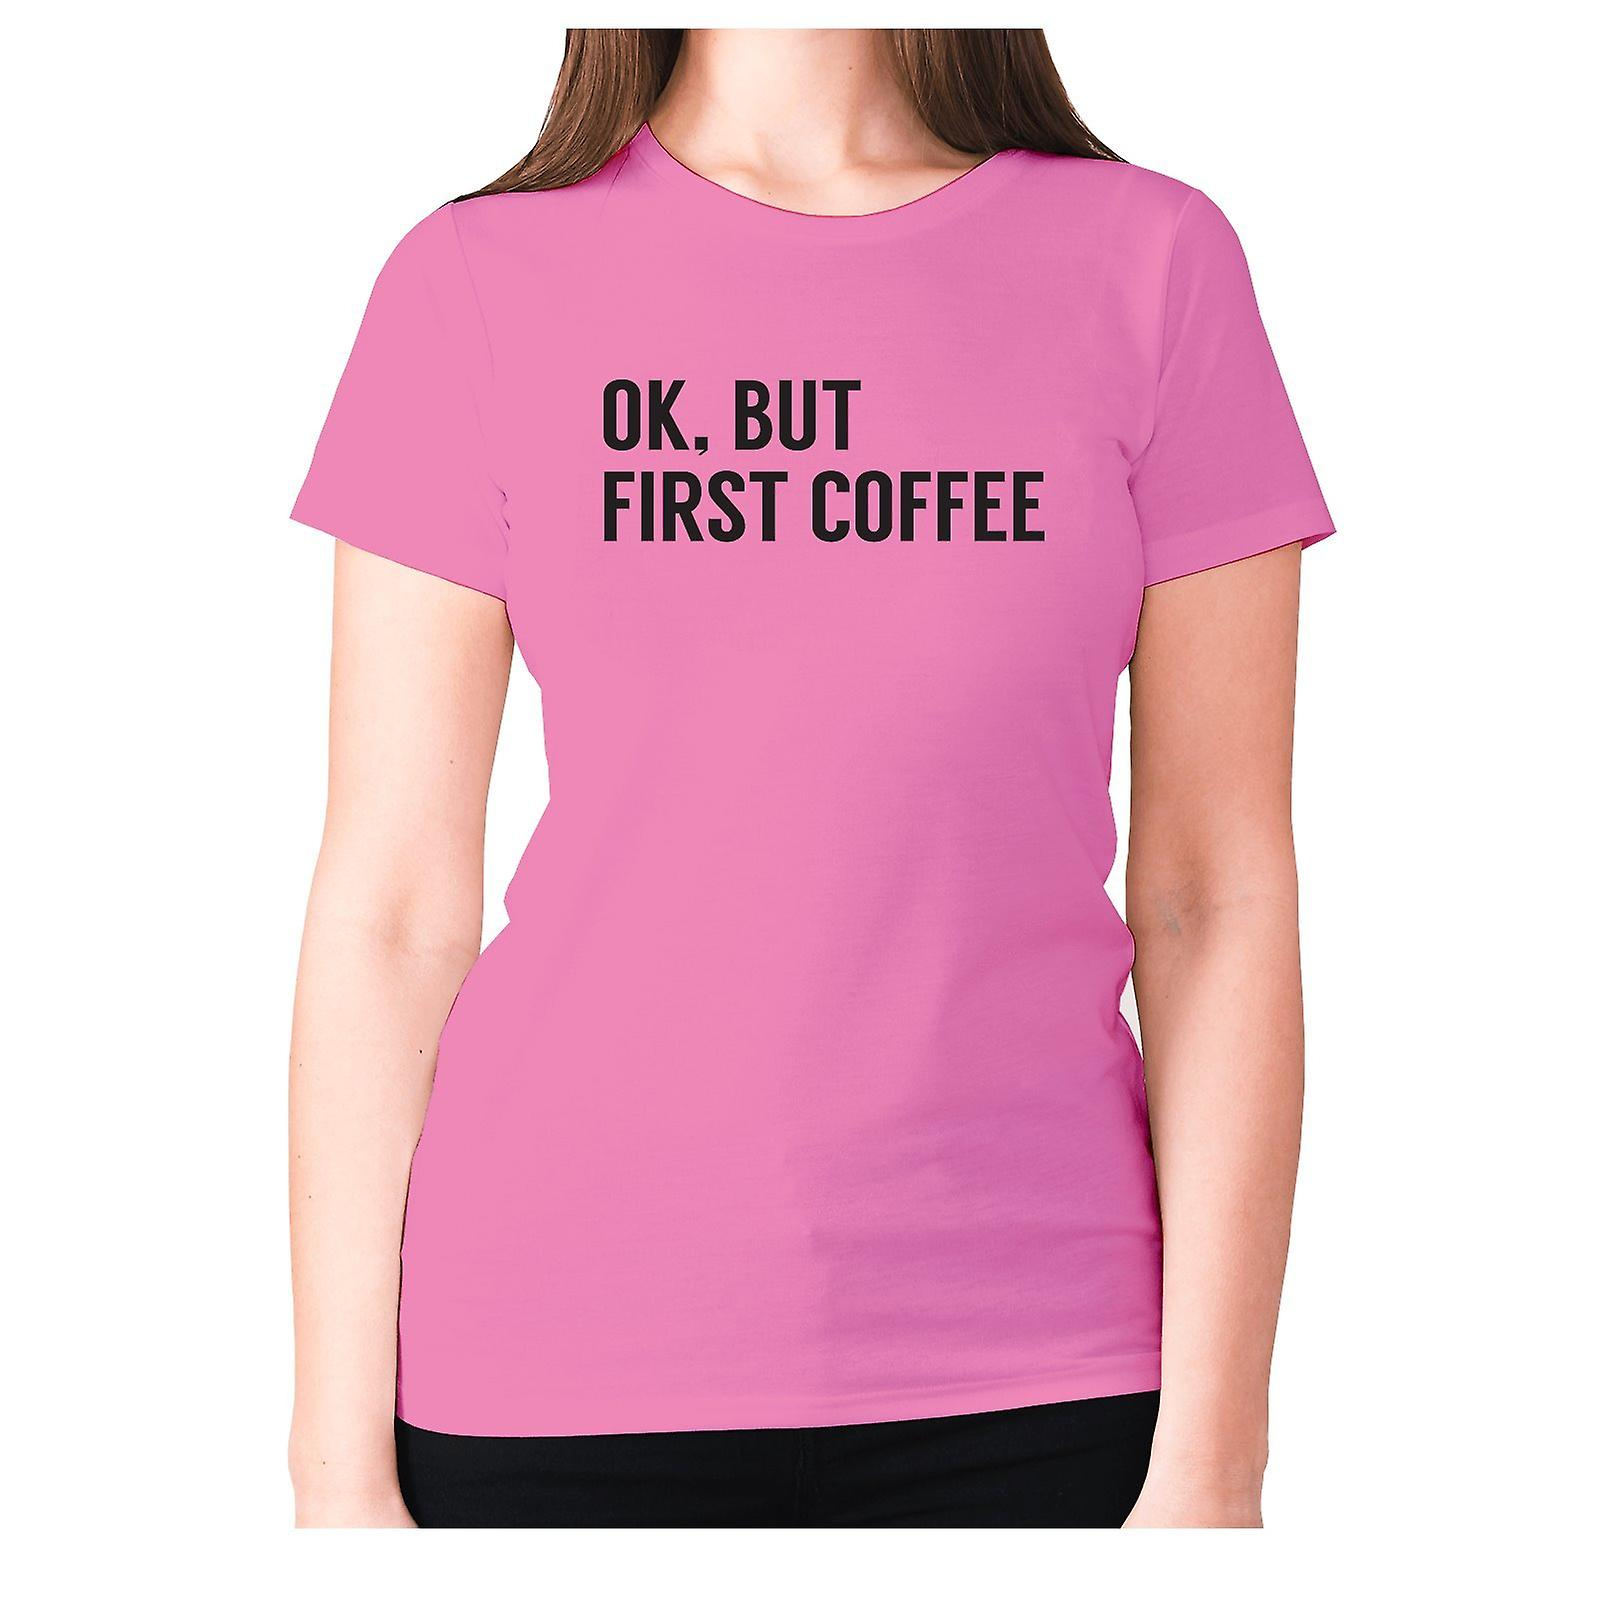 OK BUT FIRST COFFEE Ladies Slogan T-shirt in VARIOUS Colours